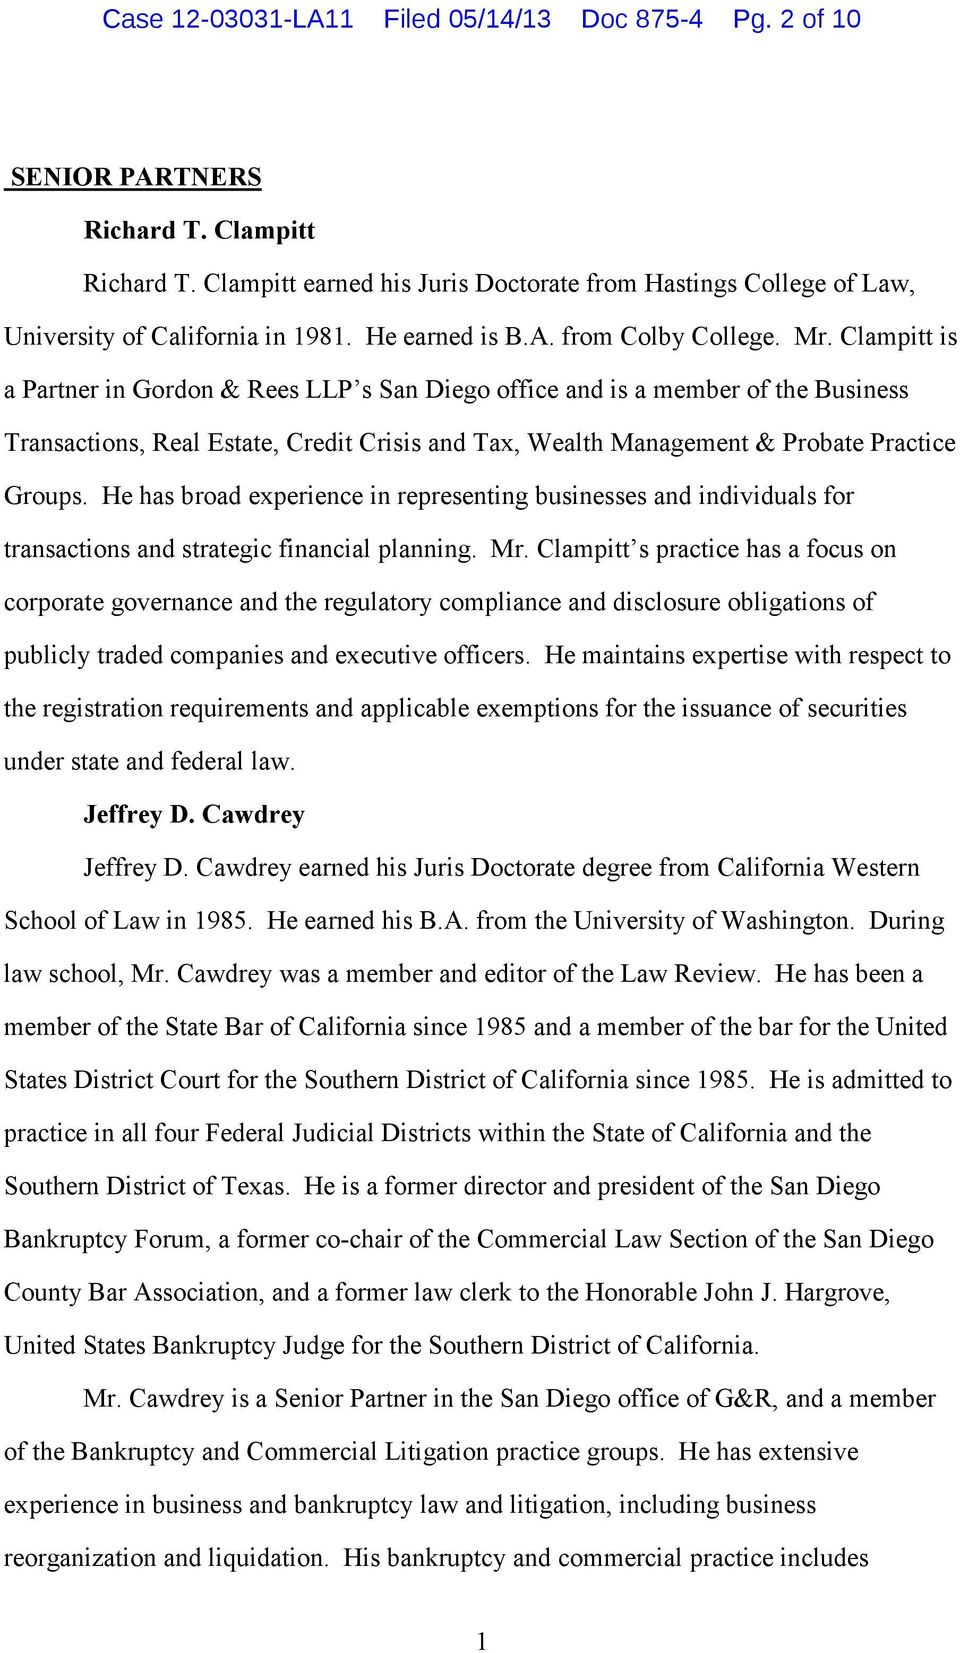 Clampitt is a Partner in Gordon & Rees LLP s San Diego office and is a member of the Business Transactions, Real Estate, Credit Crisis and Tax, Wealth Management & Probate Practice Groups.